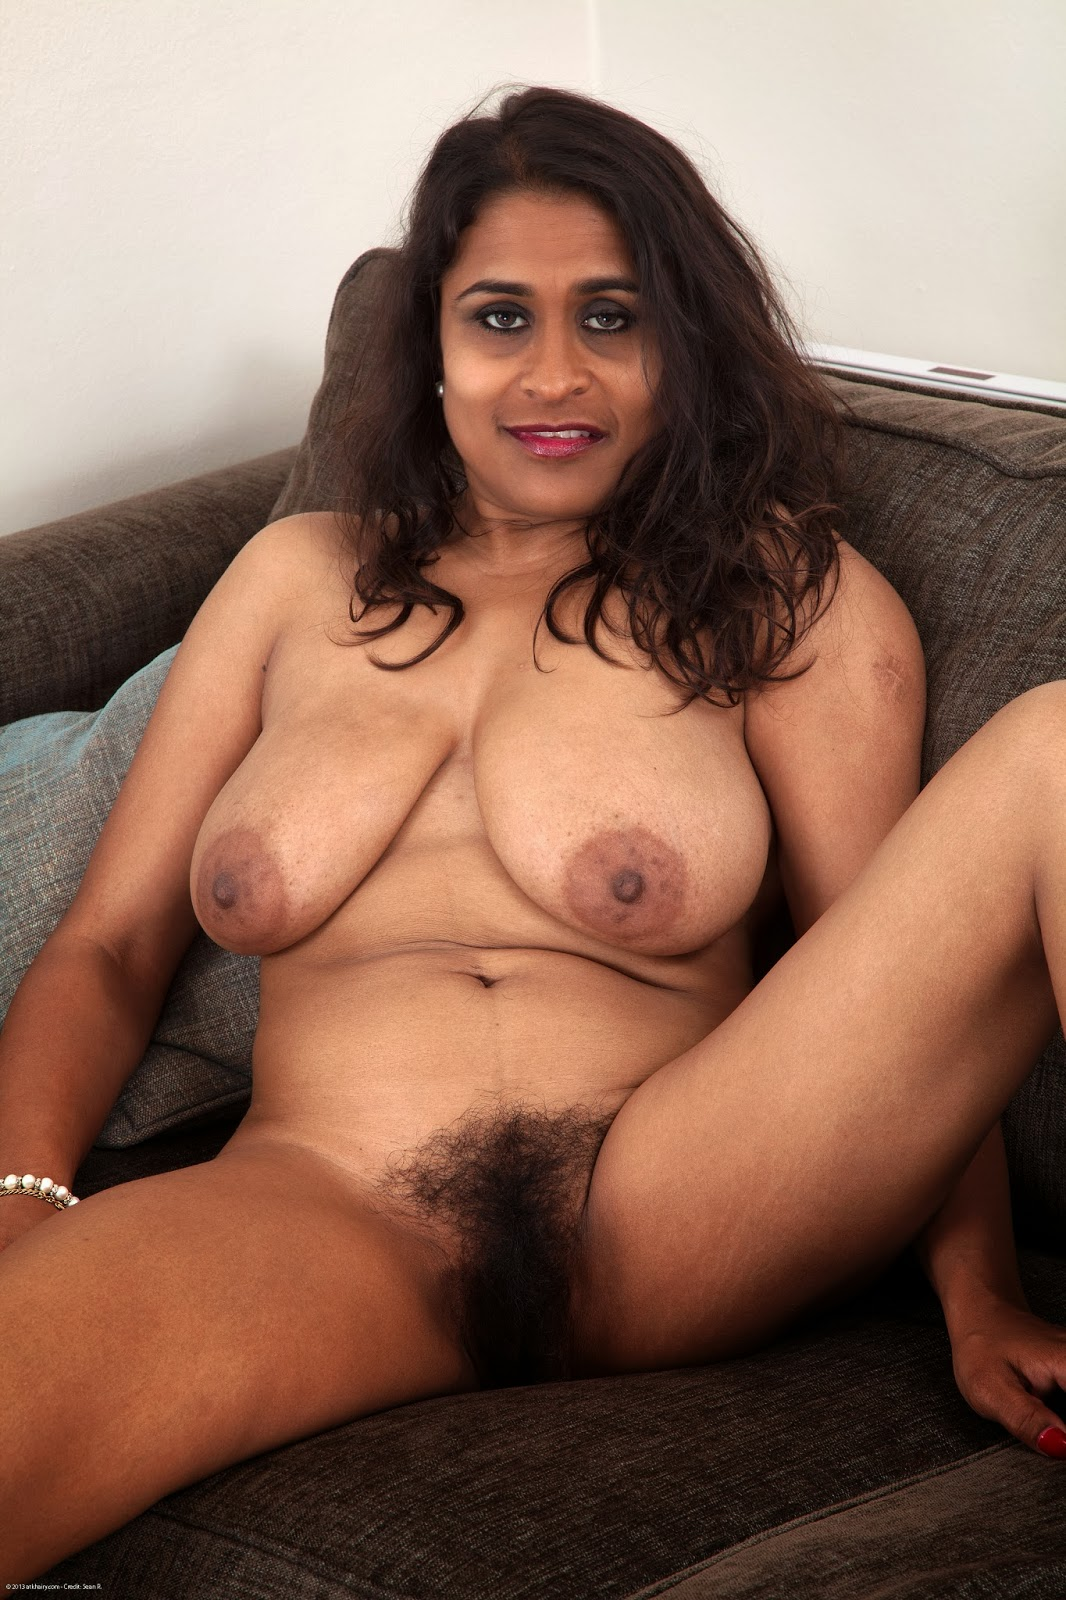 Hairy milf cream pie videos